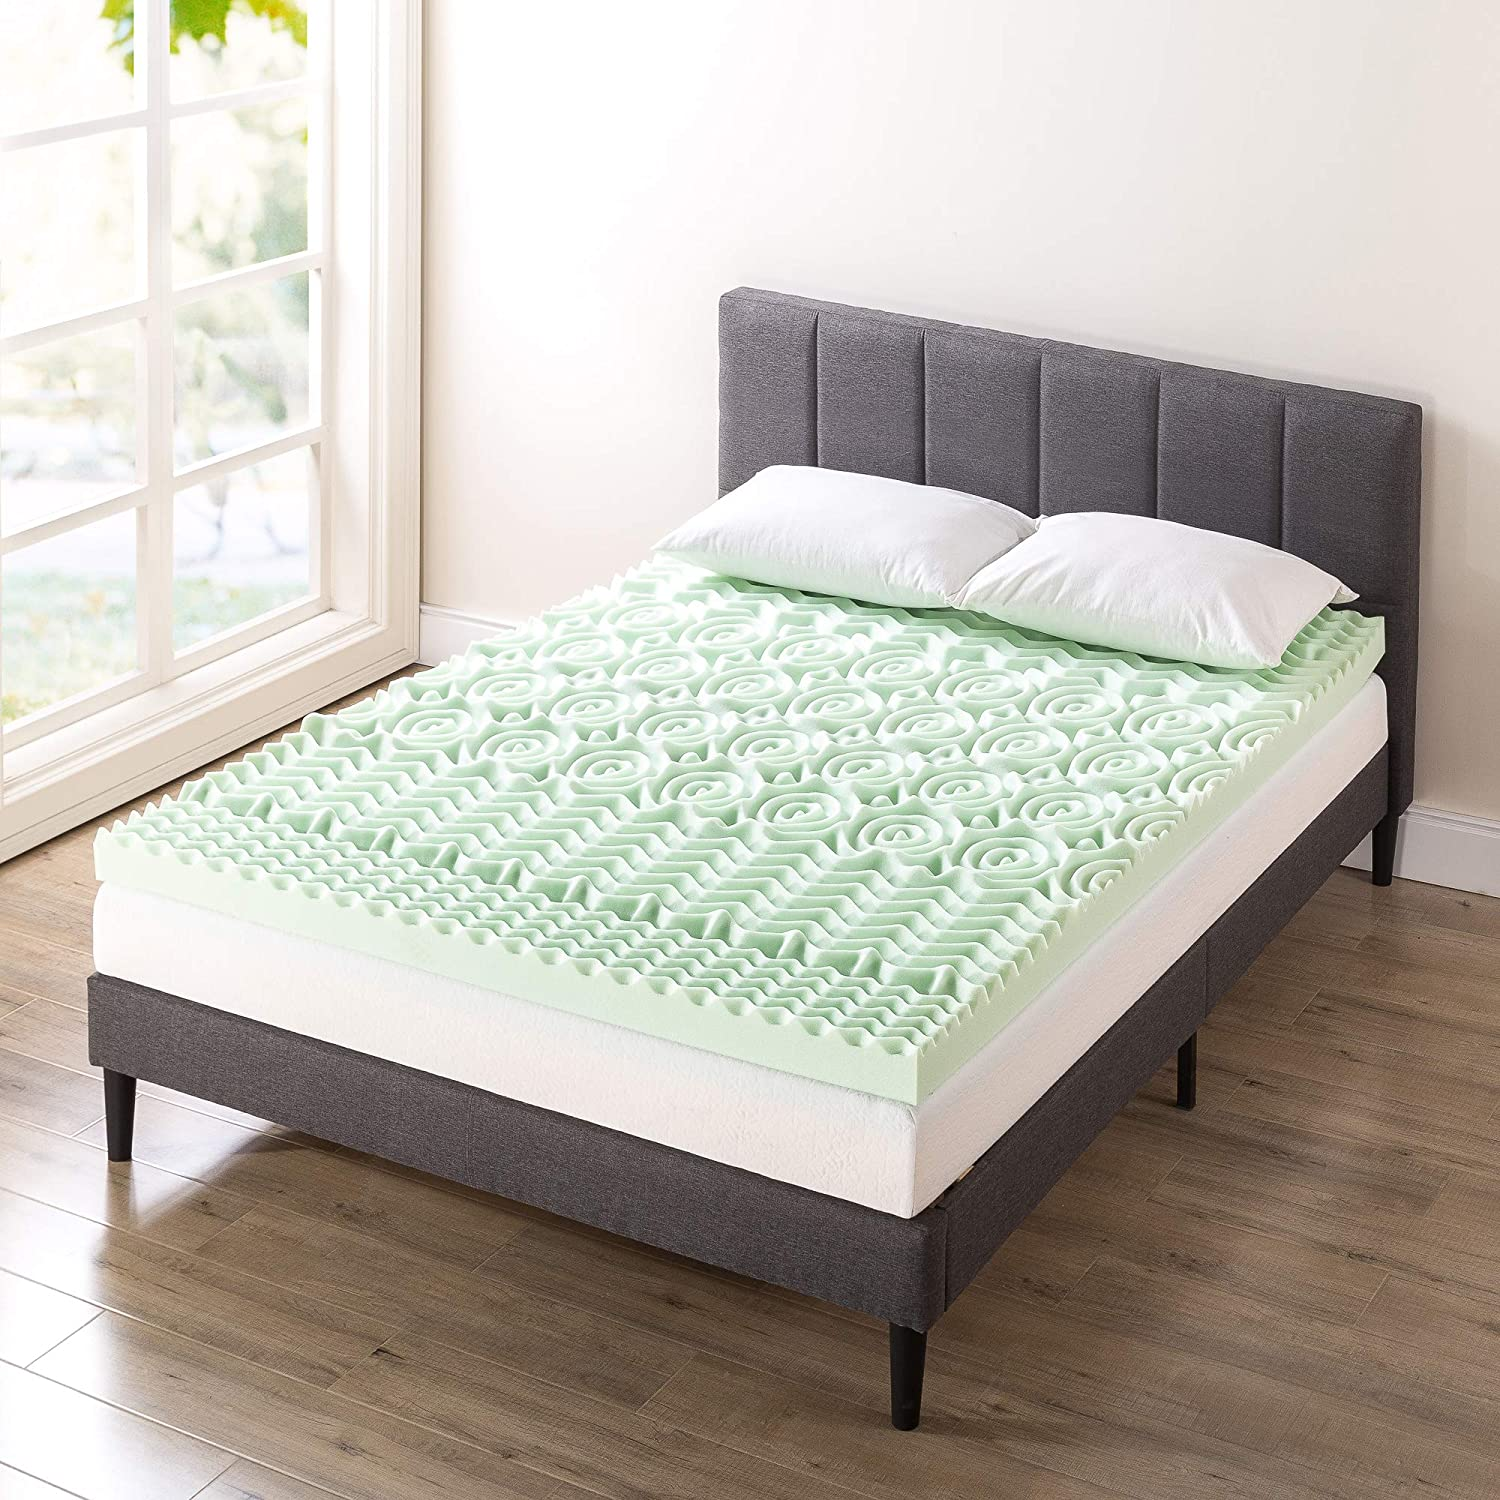 Mattress Pad with Calming Aloe Vera Infusion Best Price Mattress 1.5 Inch 5-Zone Memory Foam Topper Short Queen CertiPUR-US Certified